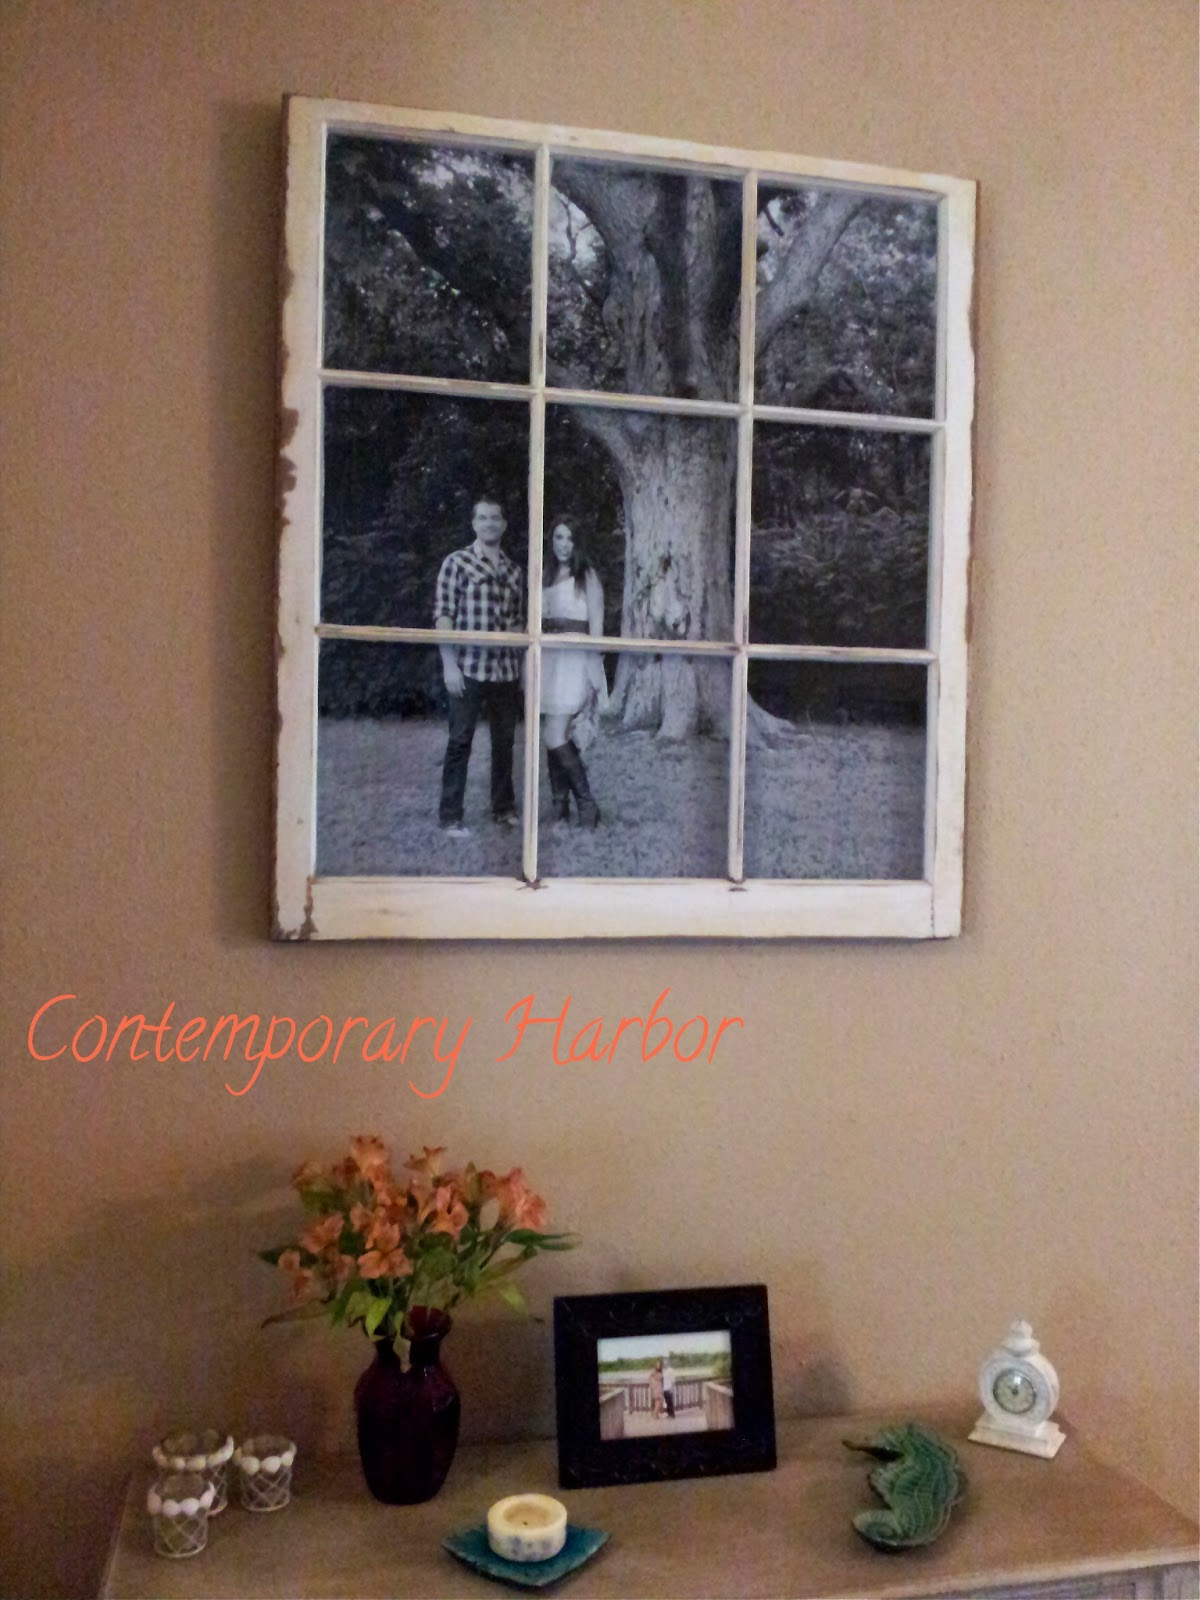 Window Pane Wall Decor contemporary harbor: window pane picture frame